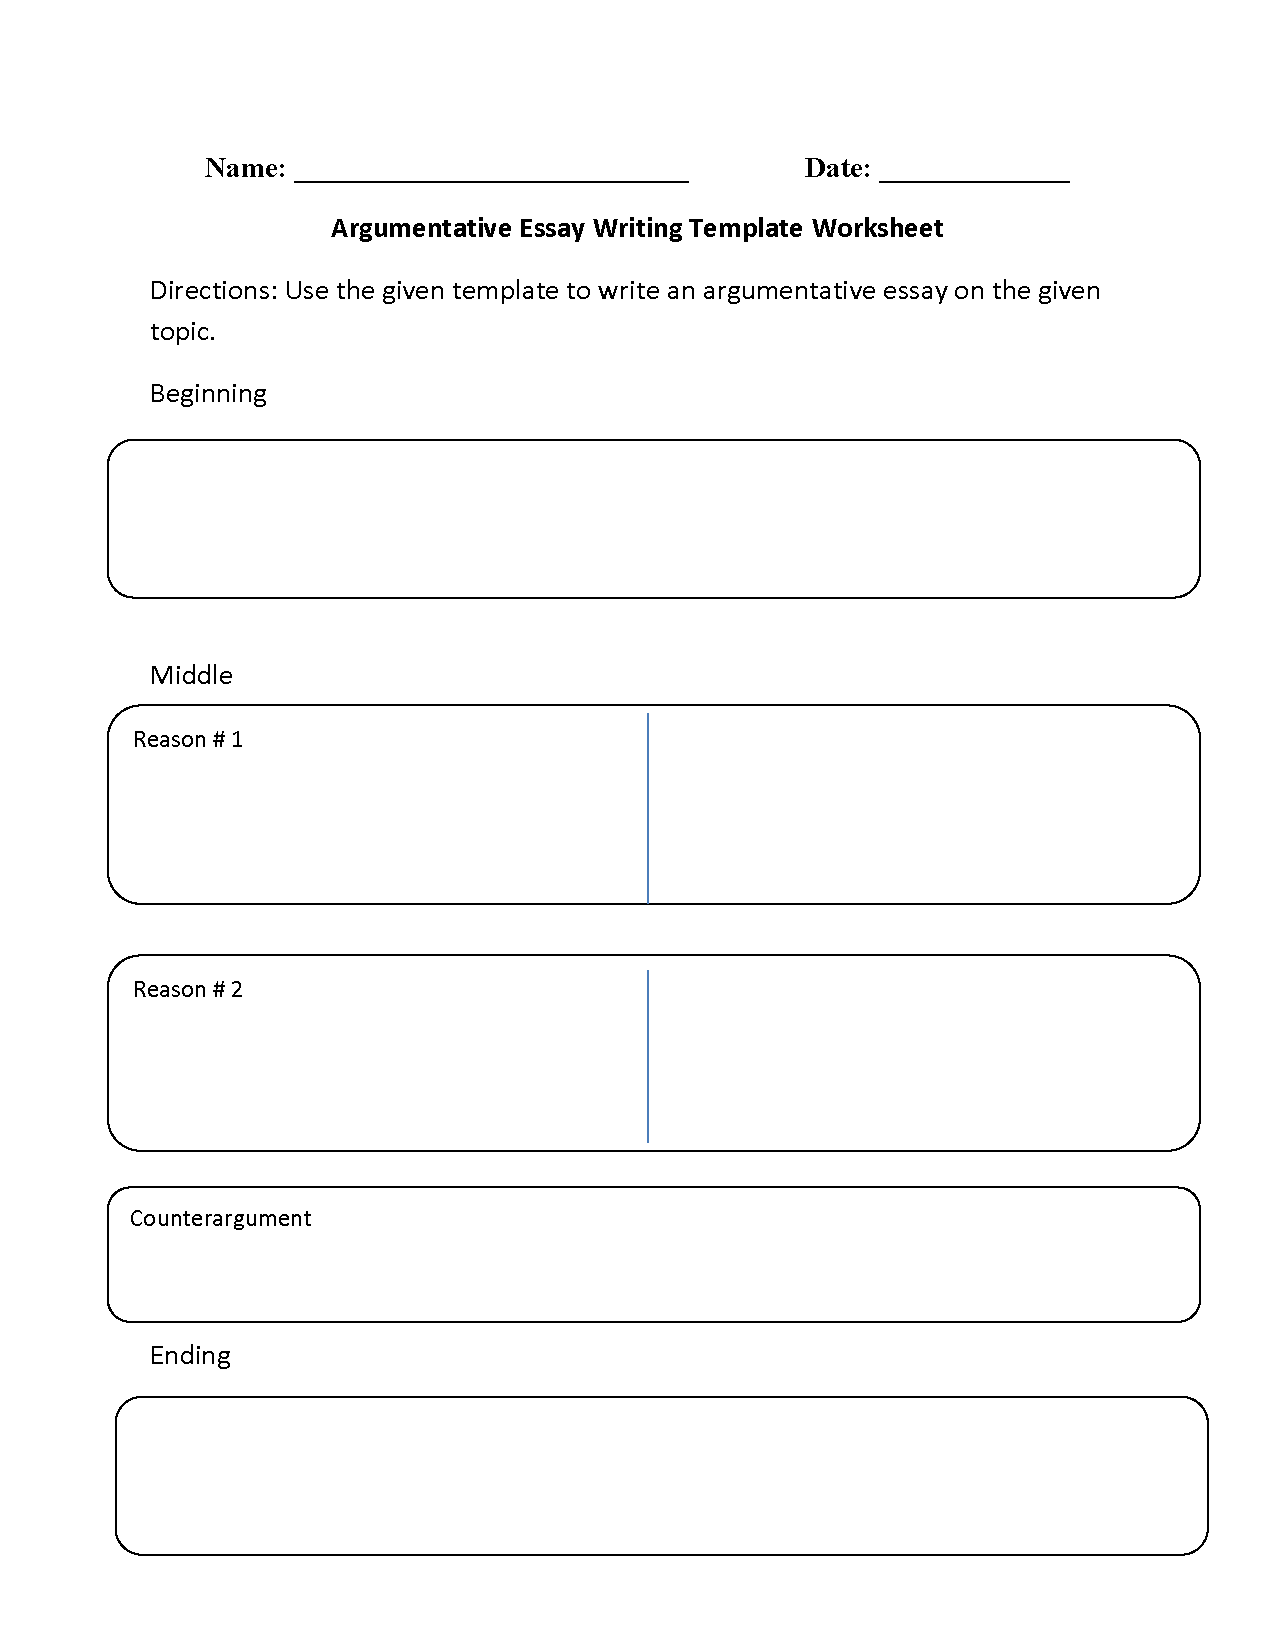 004 Write An Argumentative Essay Example Surprising Sample In Which You State And Defend Full